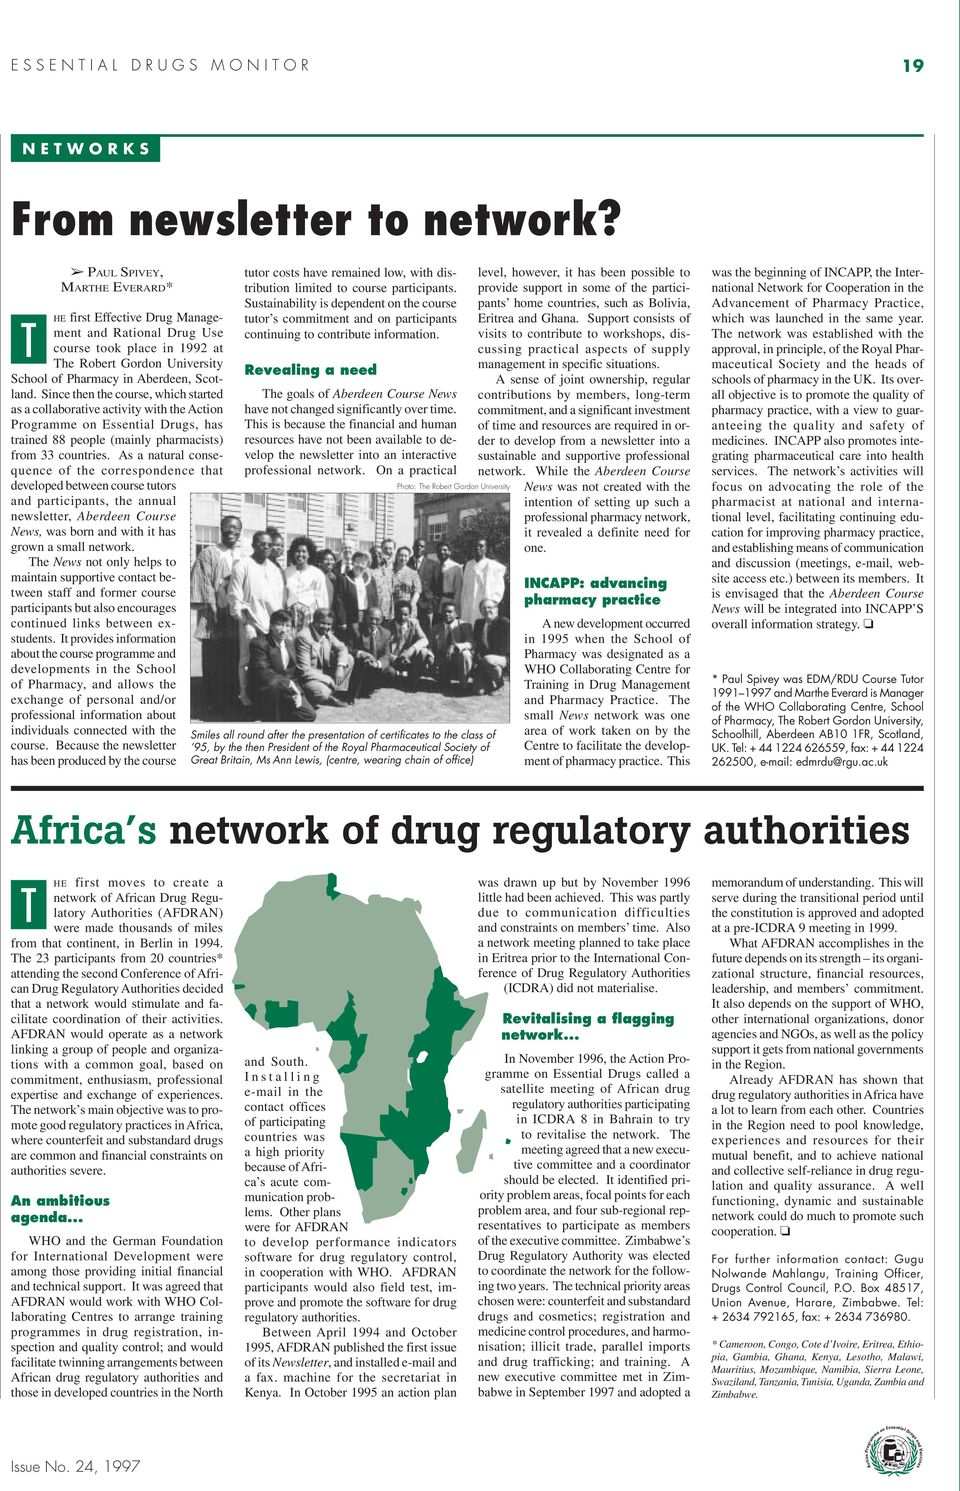 Since then the course, which started as a collaborative activity with the Action Programme on Essential Drugs, has trained 88 people (mainly pharmacists) from 33 countries.